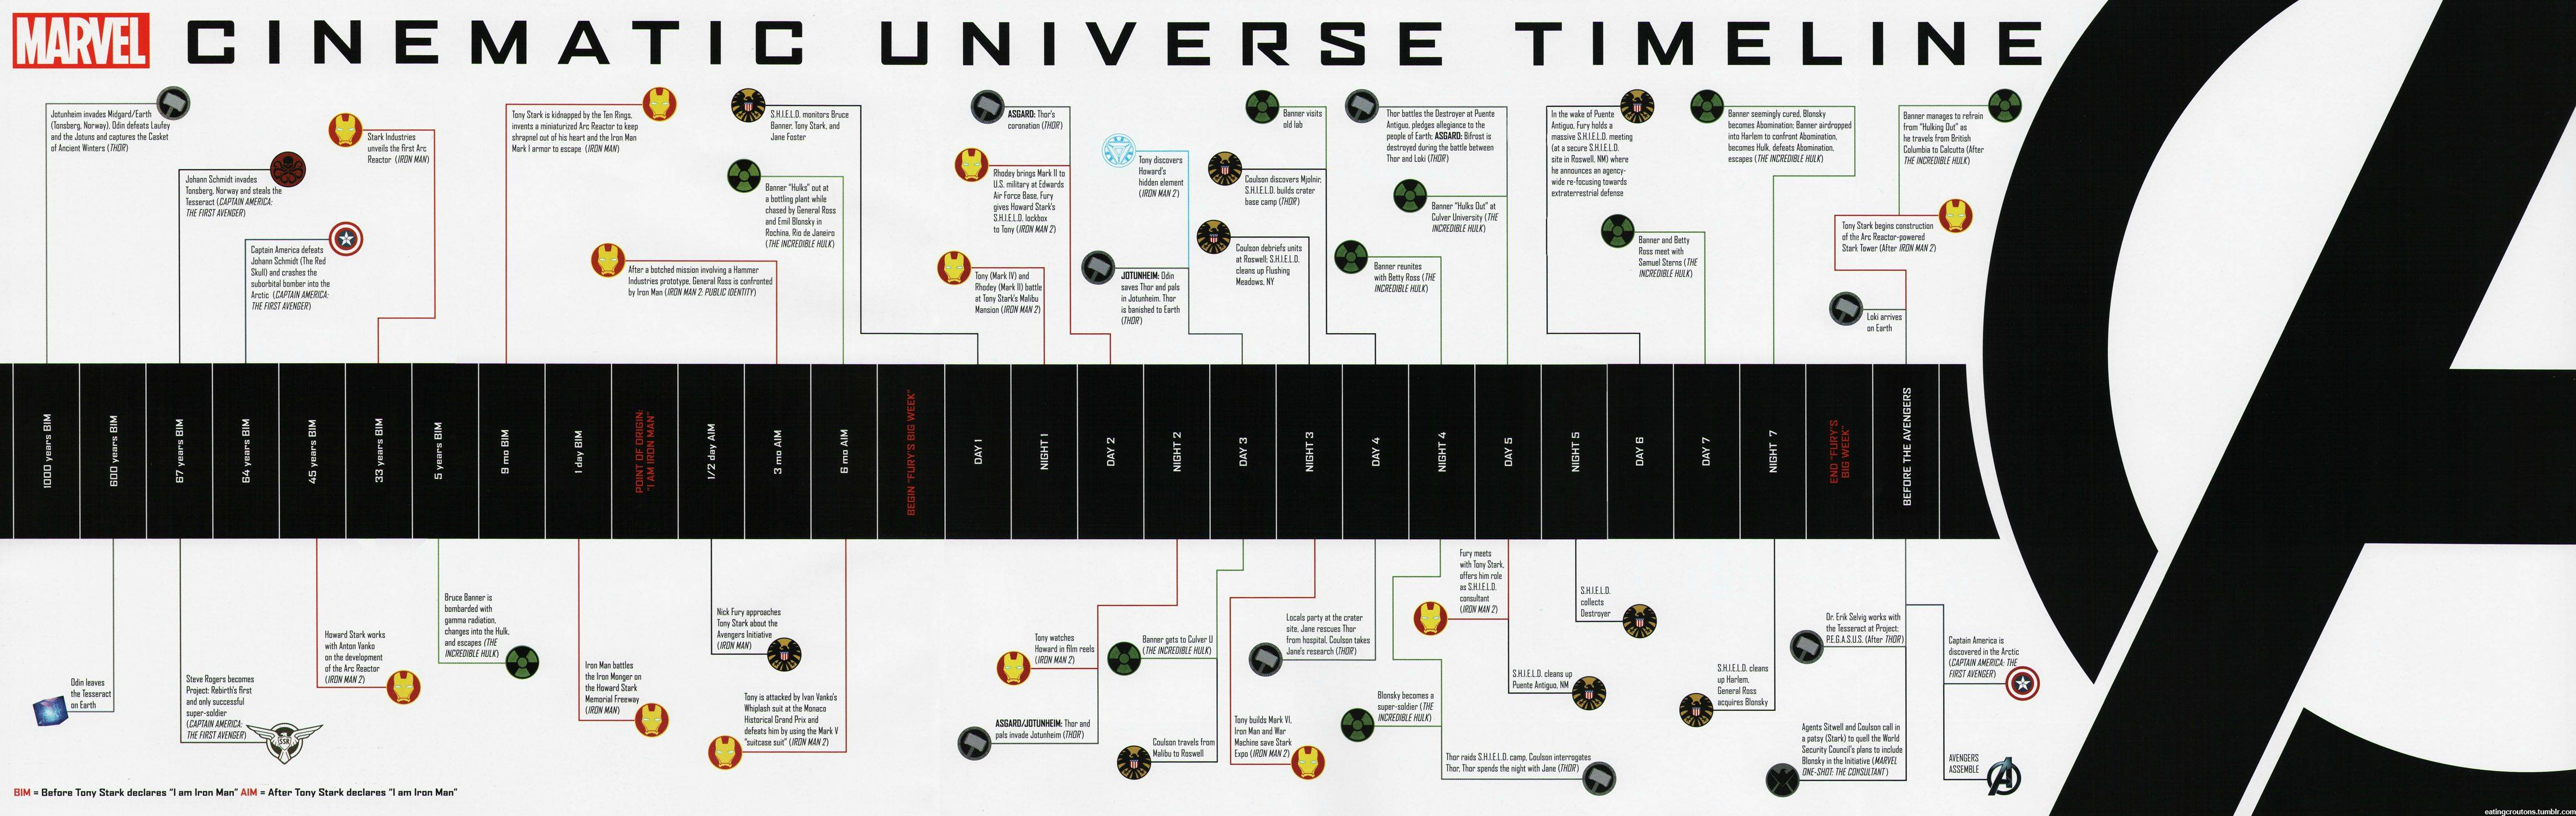 timeline marvel cinematic universe wiki fandom powered by wikia marvel movie universe